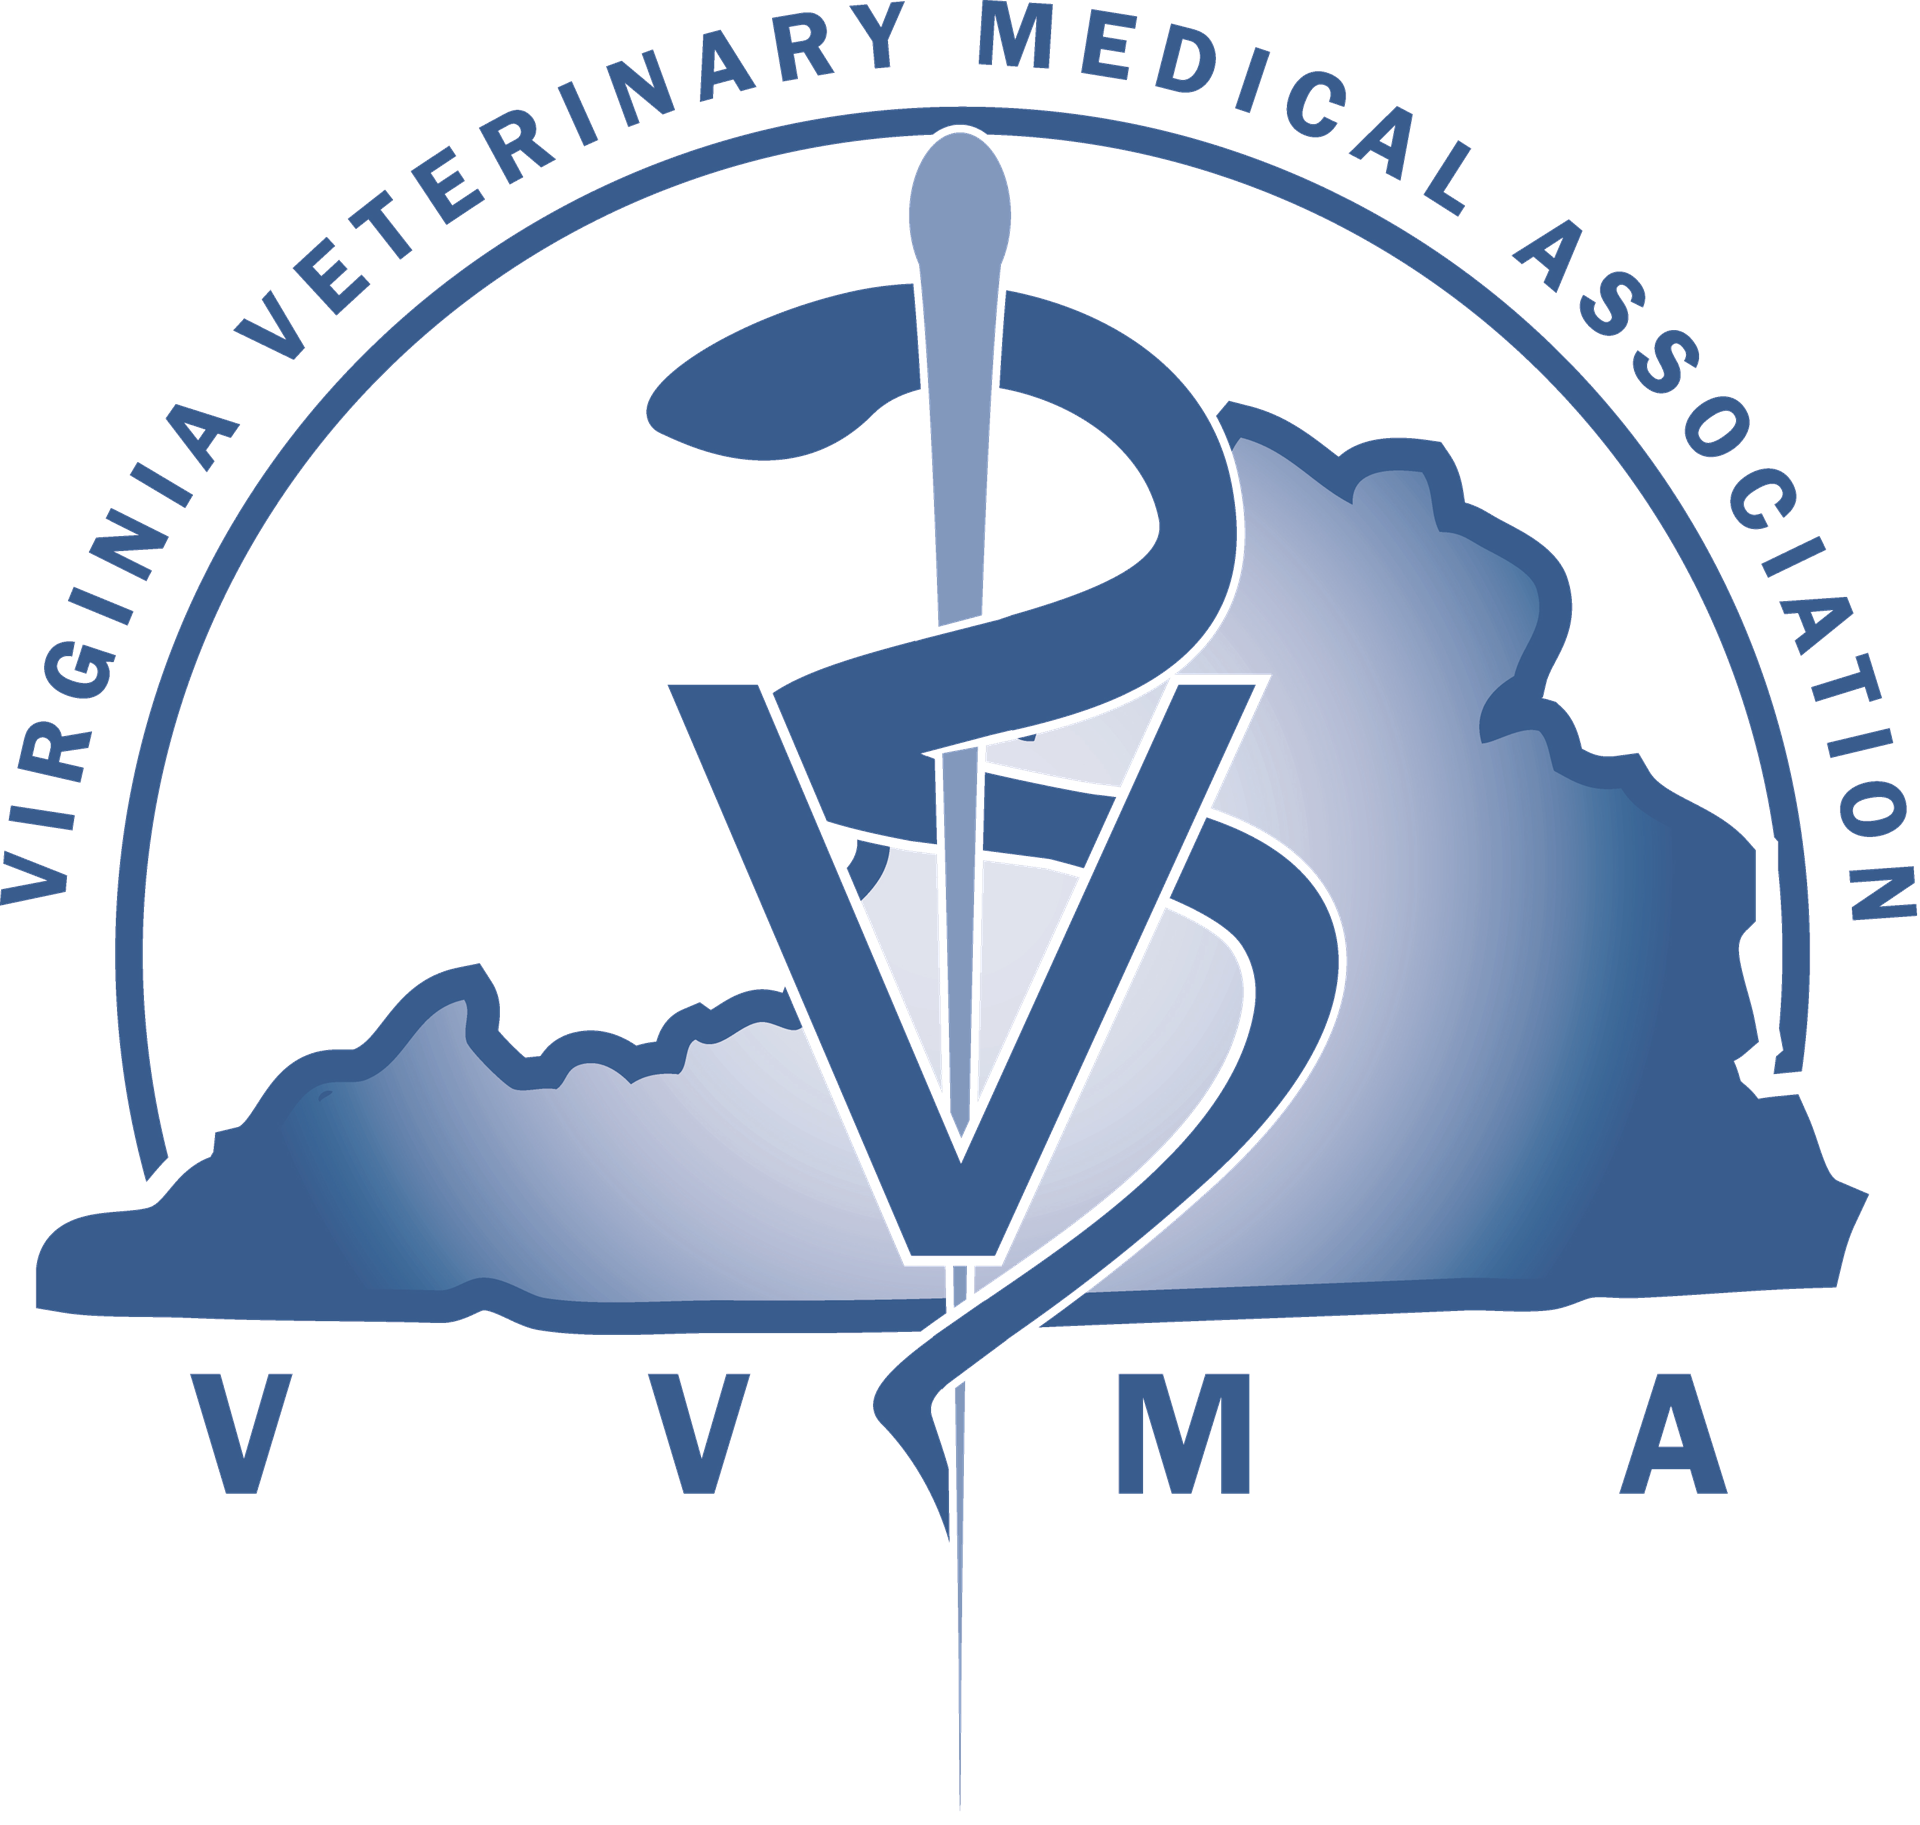 VVMA logo_transparent background.png